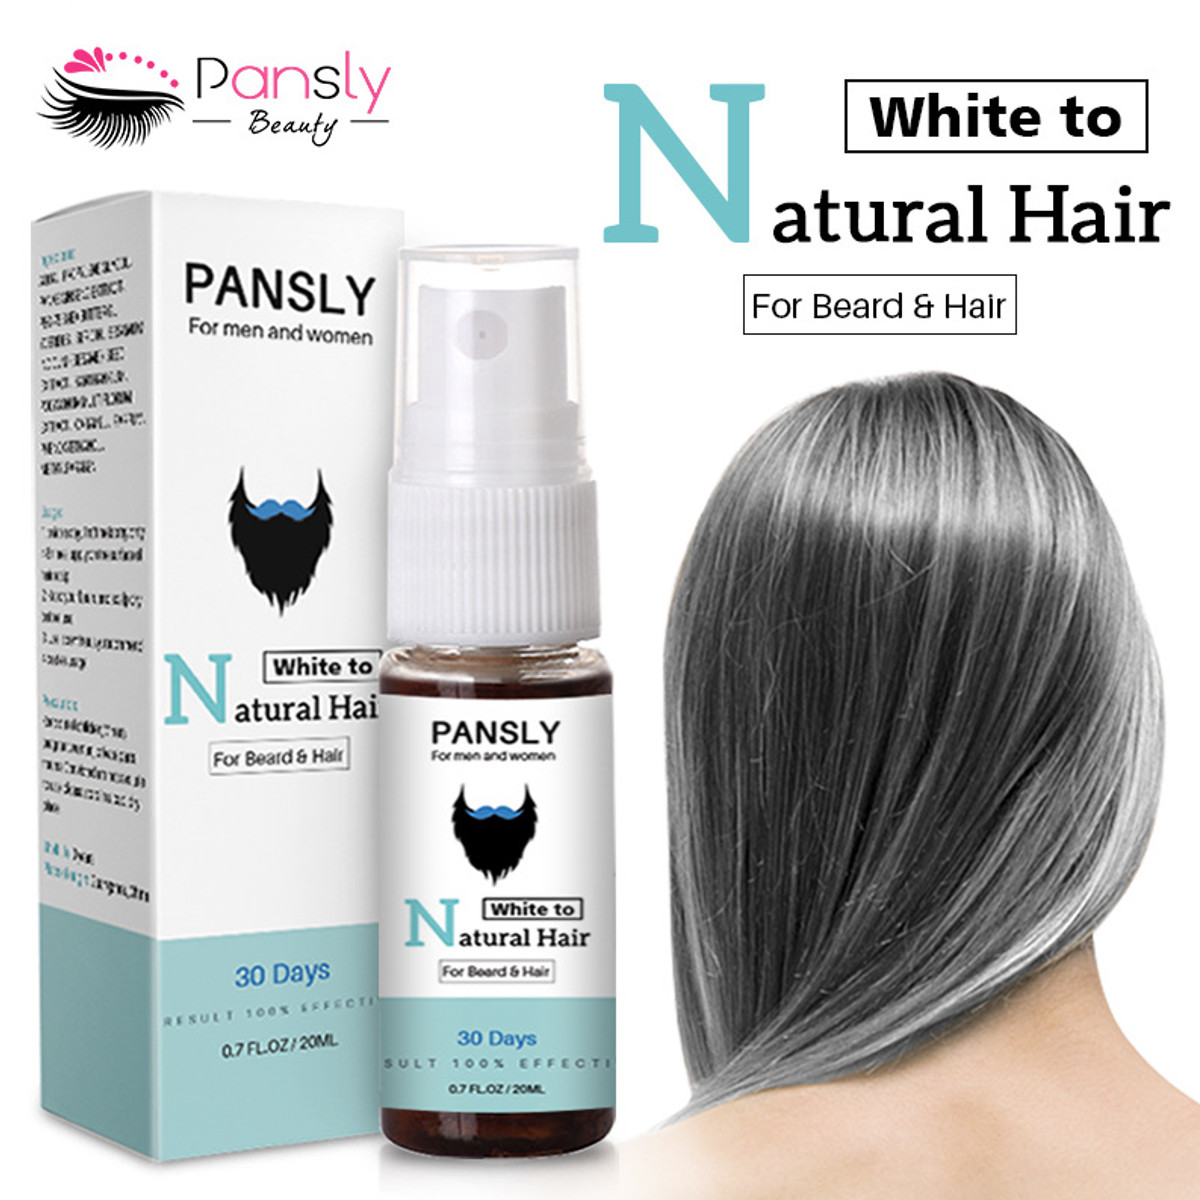 2019 New Pansly 20ml Herbal Cure White Hair Care Unisex Tonic Restore White Beard & Hair To Natural Hair Color Spray Dyeing